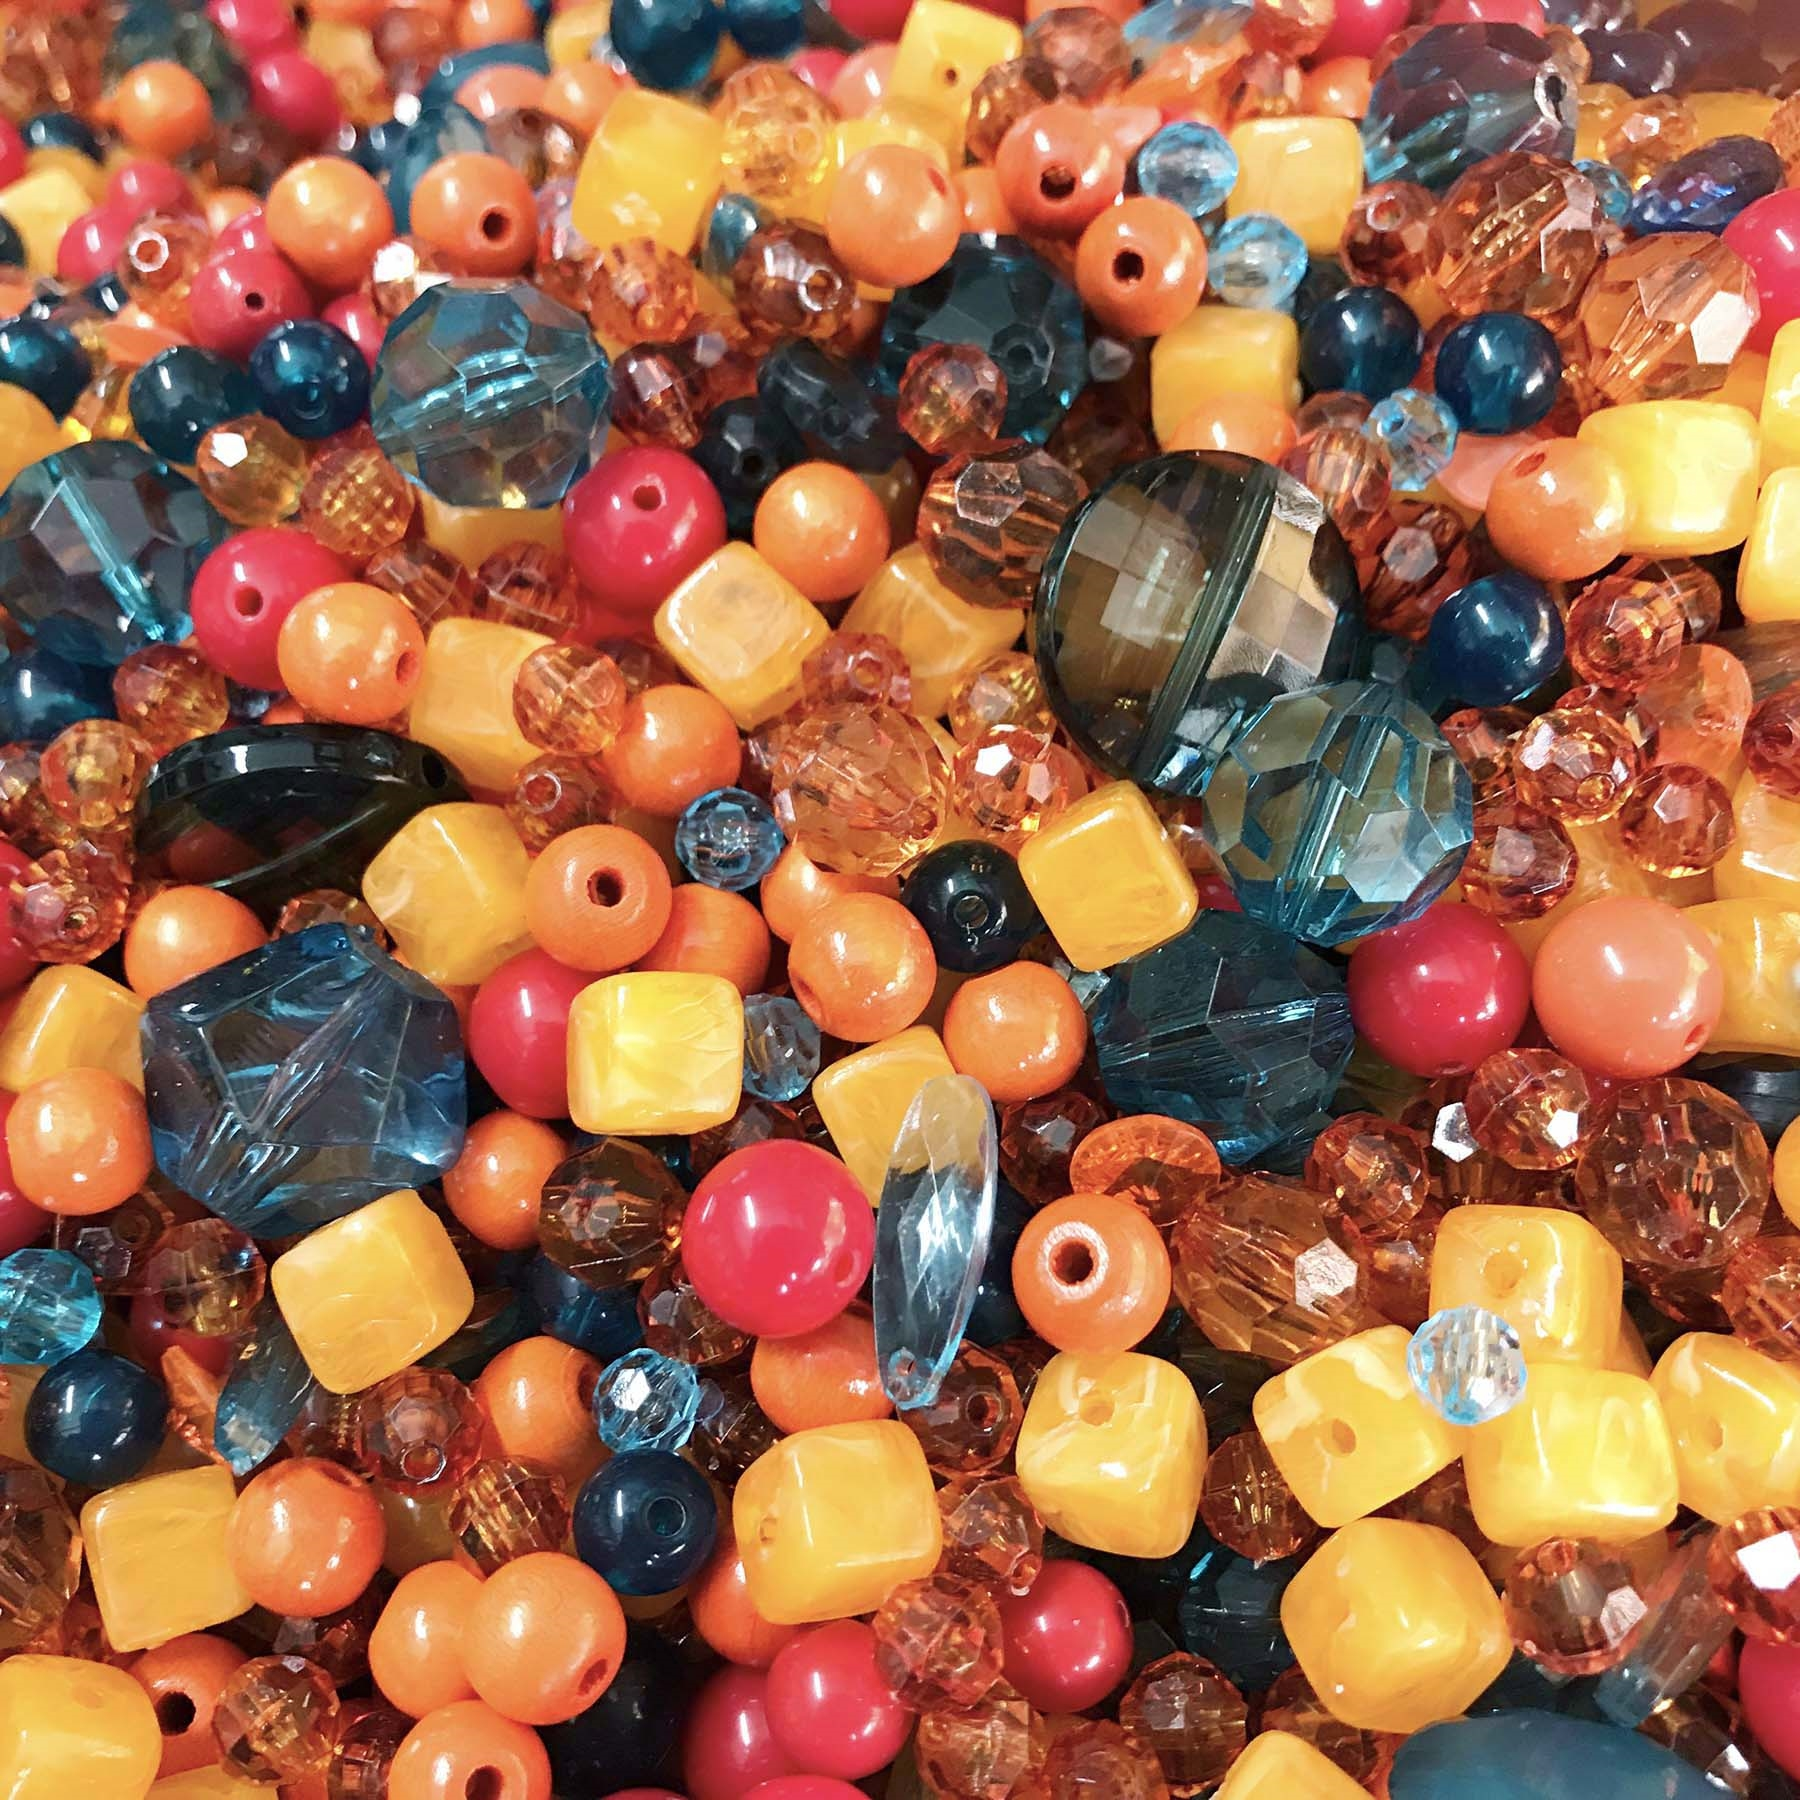 vintage beads, drilled, acrylic bead mix, beads, vintage beads, bead mix, assorted beads, B'sue Boutiques, turquoise beads, jewelry beads, designer beads, beading, acrylic beads, Hot-Cha-Cha Bead mix, beading supplies, 0896, marble cube lucite beads